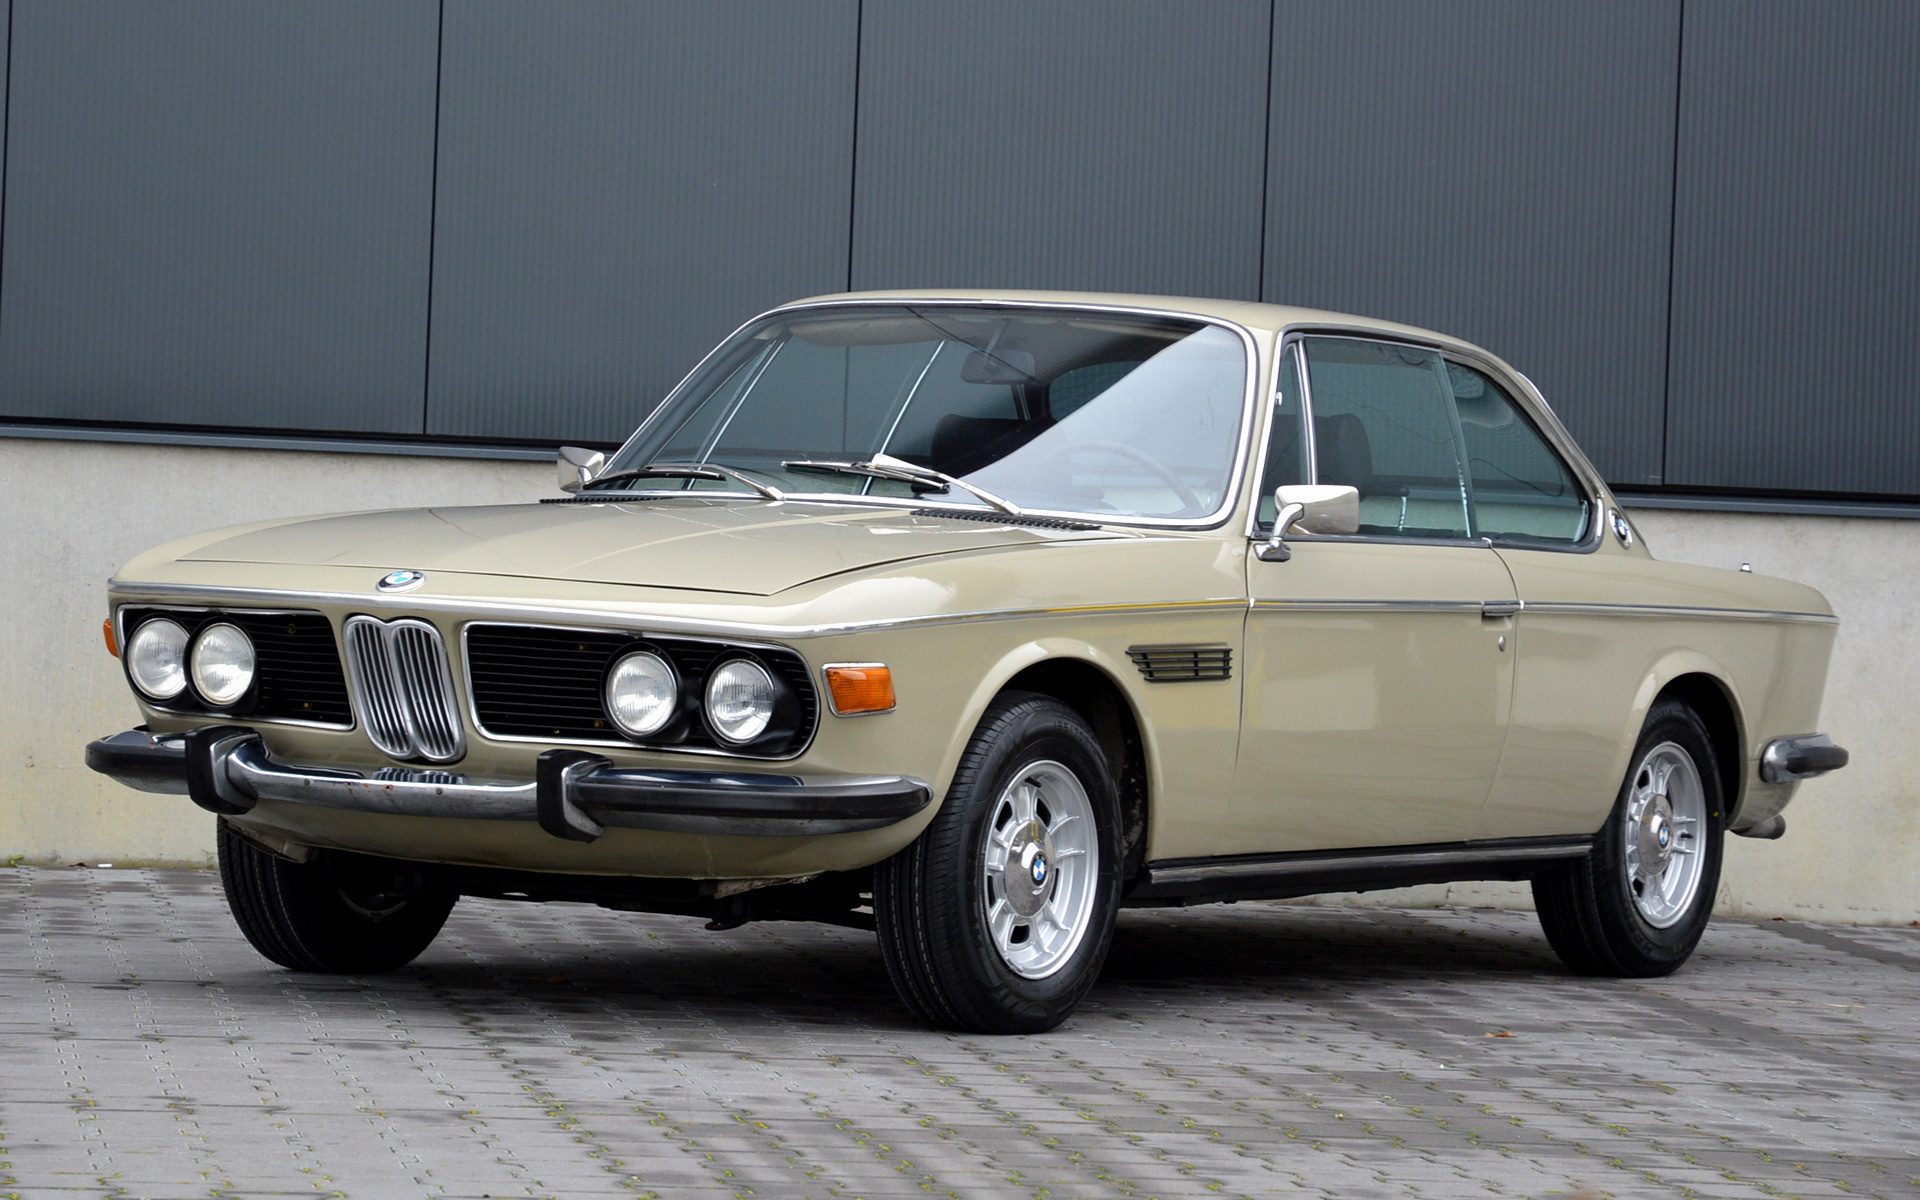 BMW 2800 CS (1968) Wallpapers and HD Images - Car Pixel